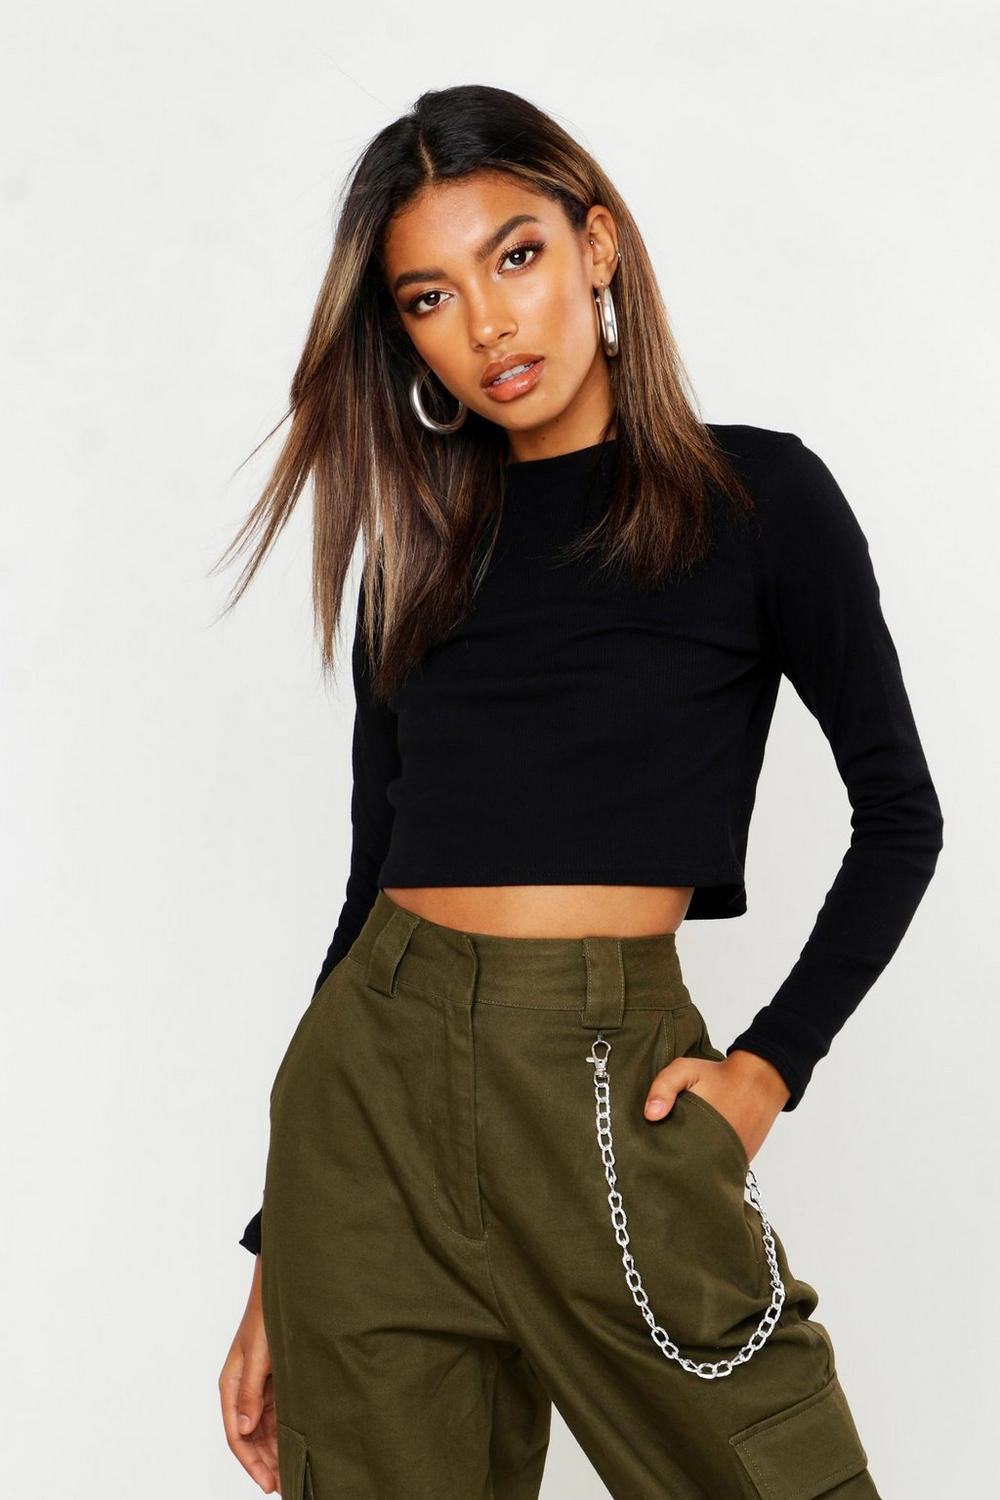 Perfashion Cropped Sweatshirts for Women, Long Sleeve Cute Crop Top Shirt Cotton Pullover. by Perfashion. $ - $ $ 16 $ 17 99 Prime. FREE Shipping on eligible orders. Some sizes/colors are Prime eligible. out of 5 stars Product Features.